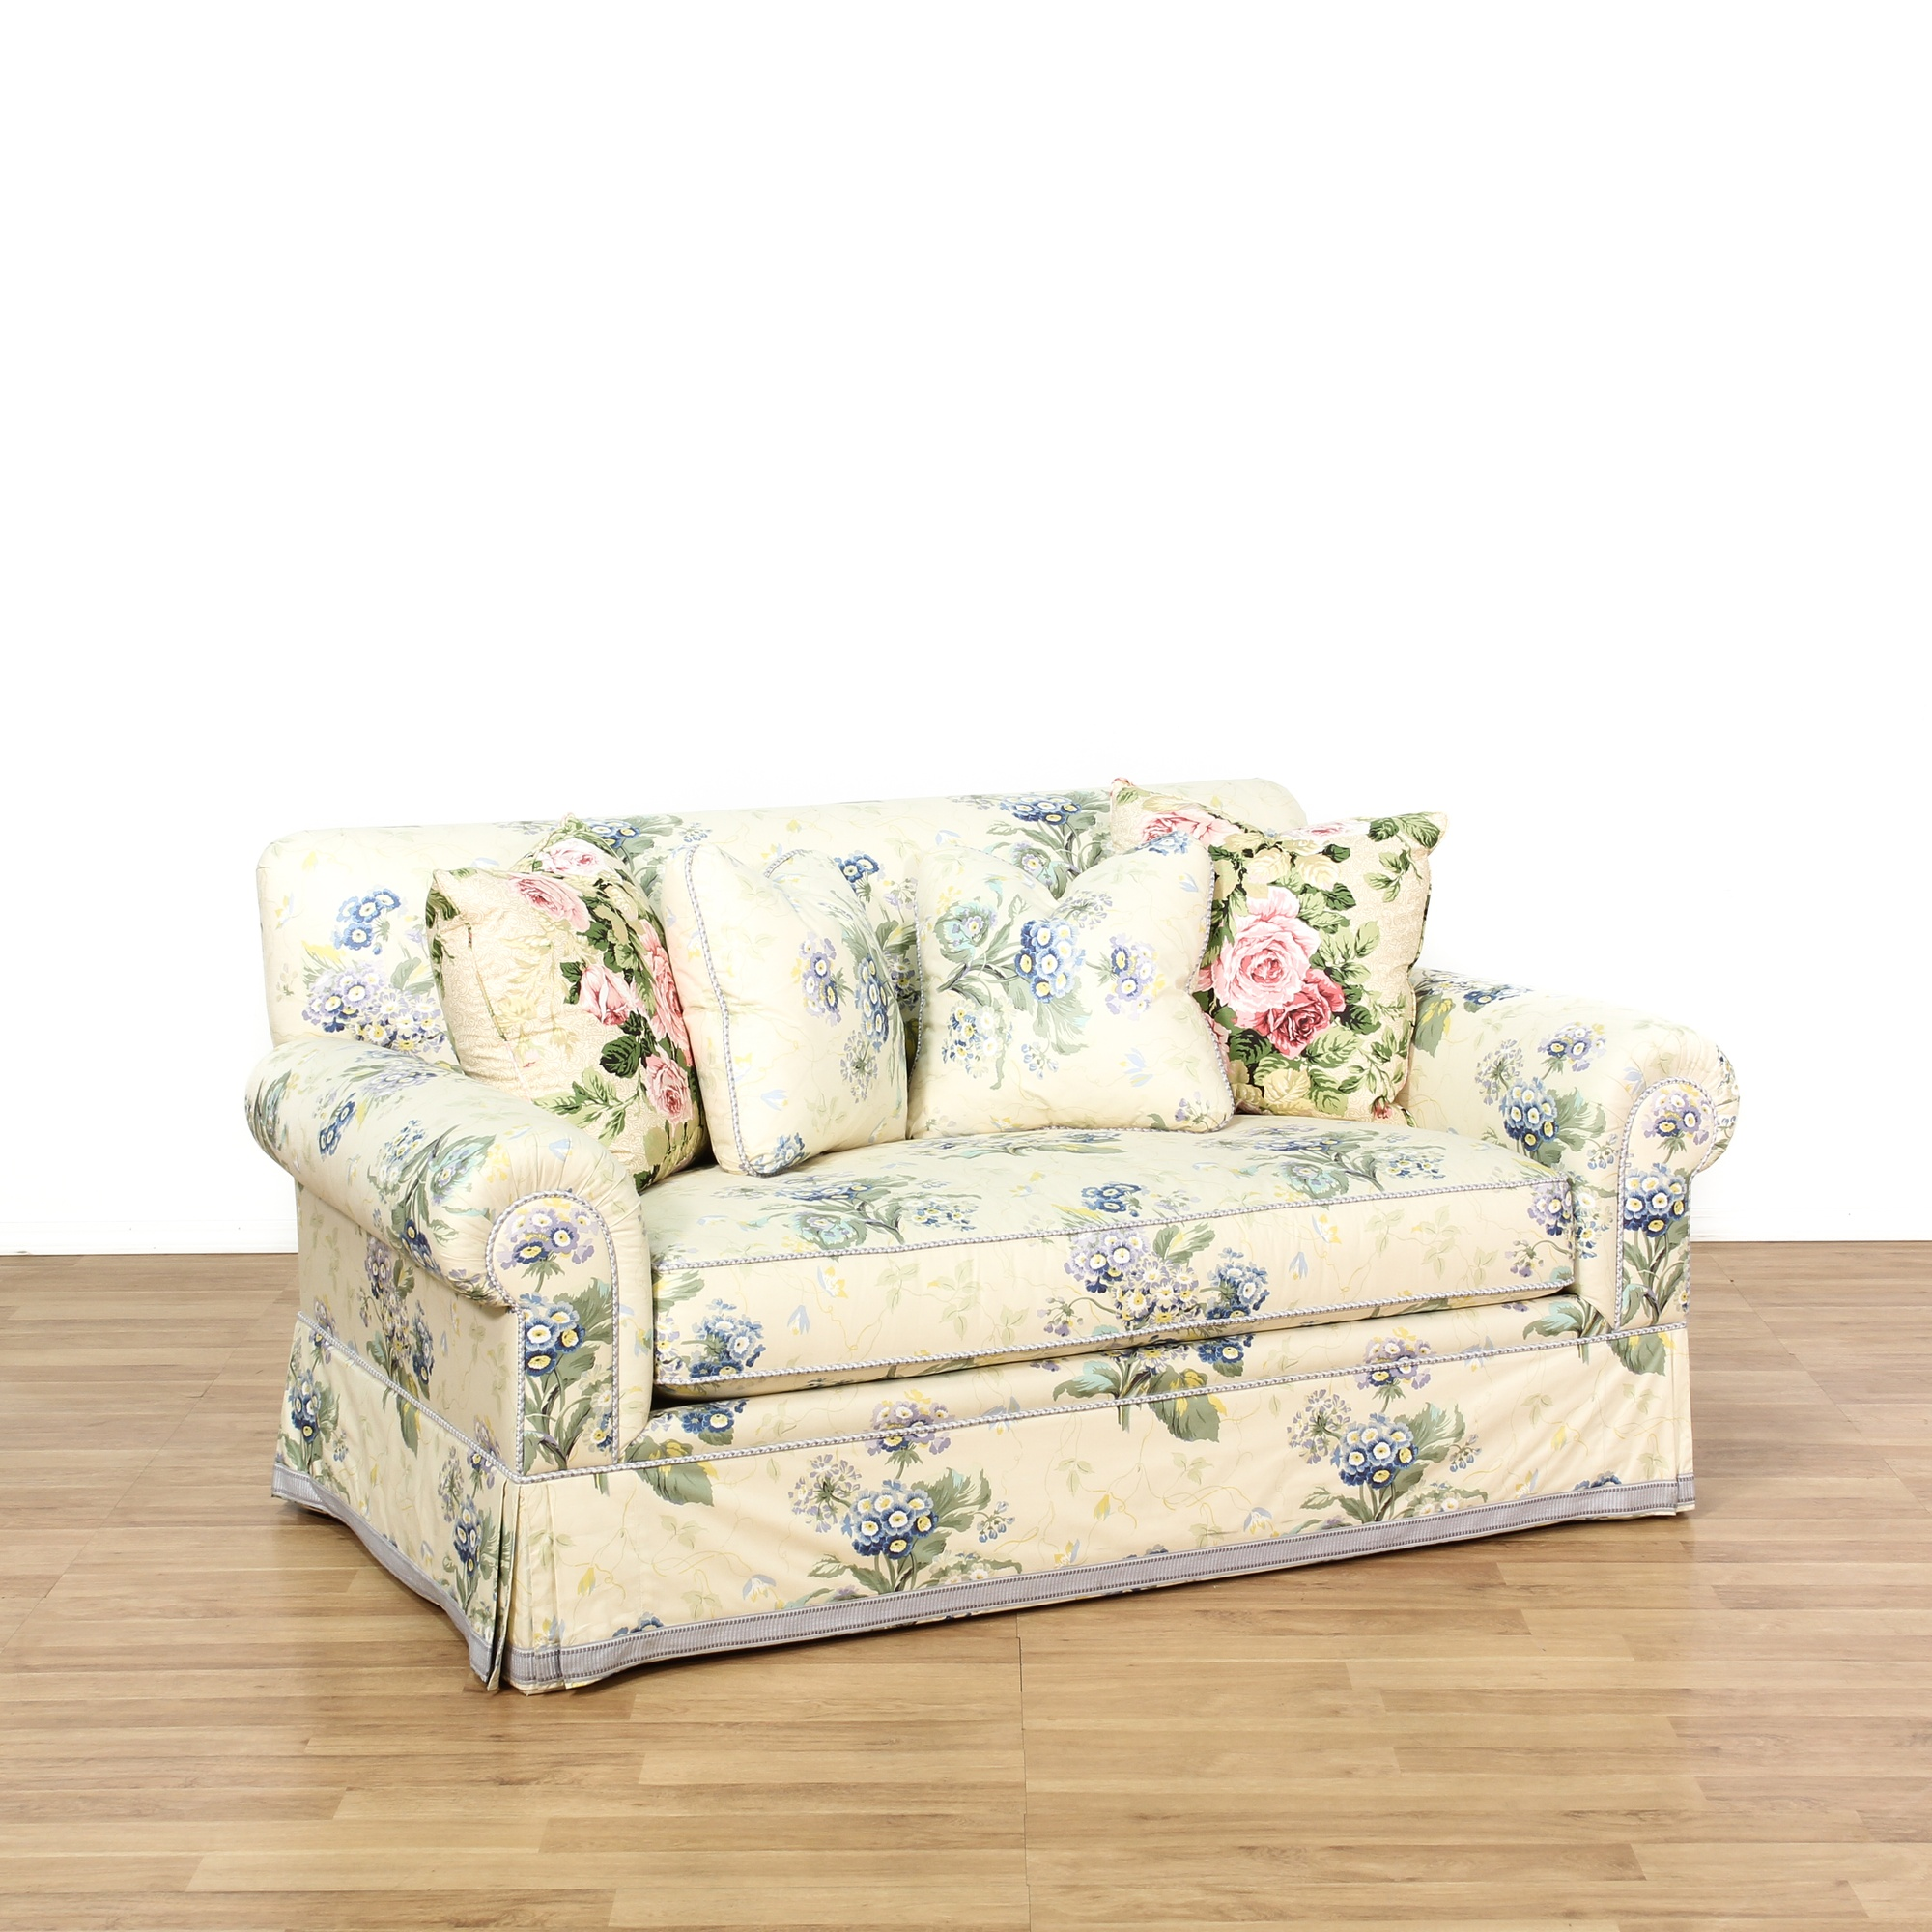 Cottage Chic Floral Upholstered Loveseat Loveseat Vintage Furniture San Diego Los Angeles